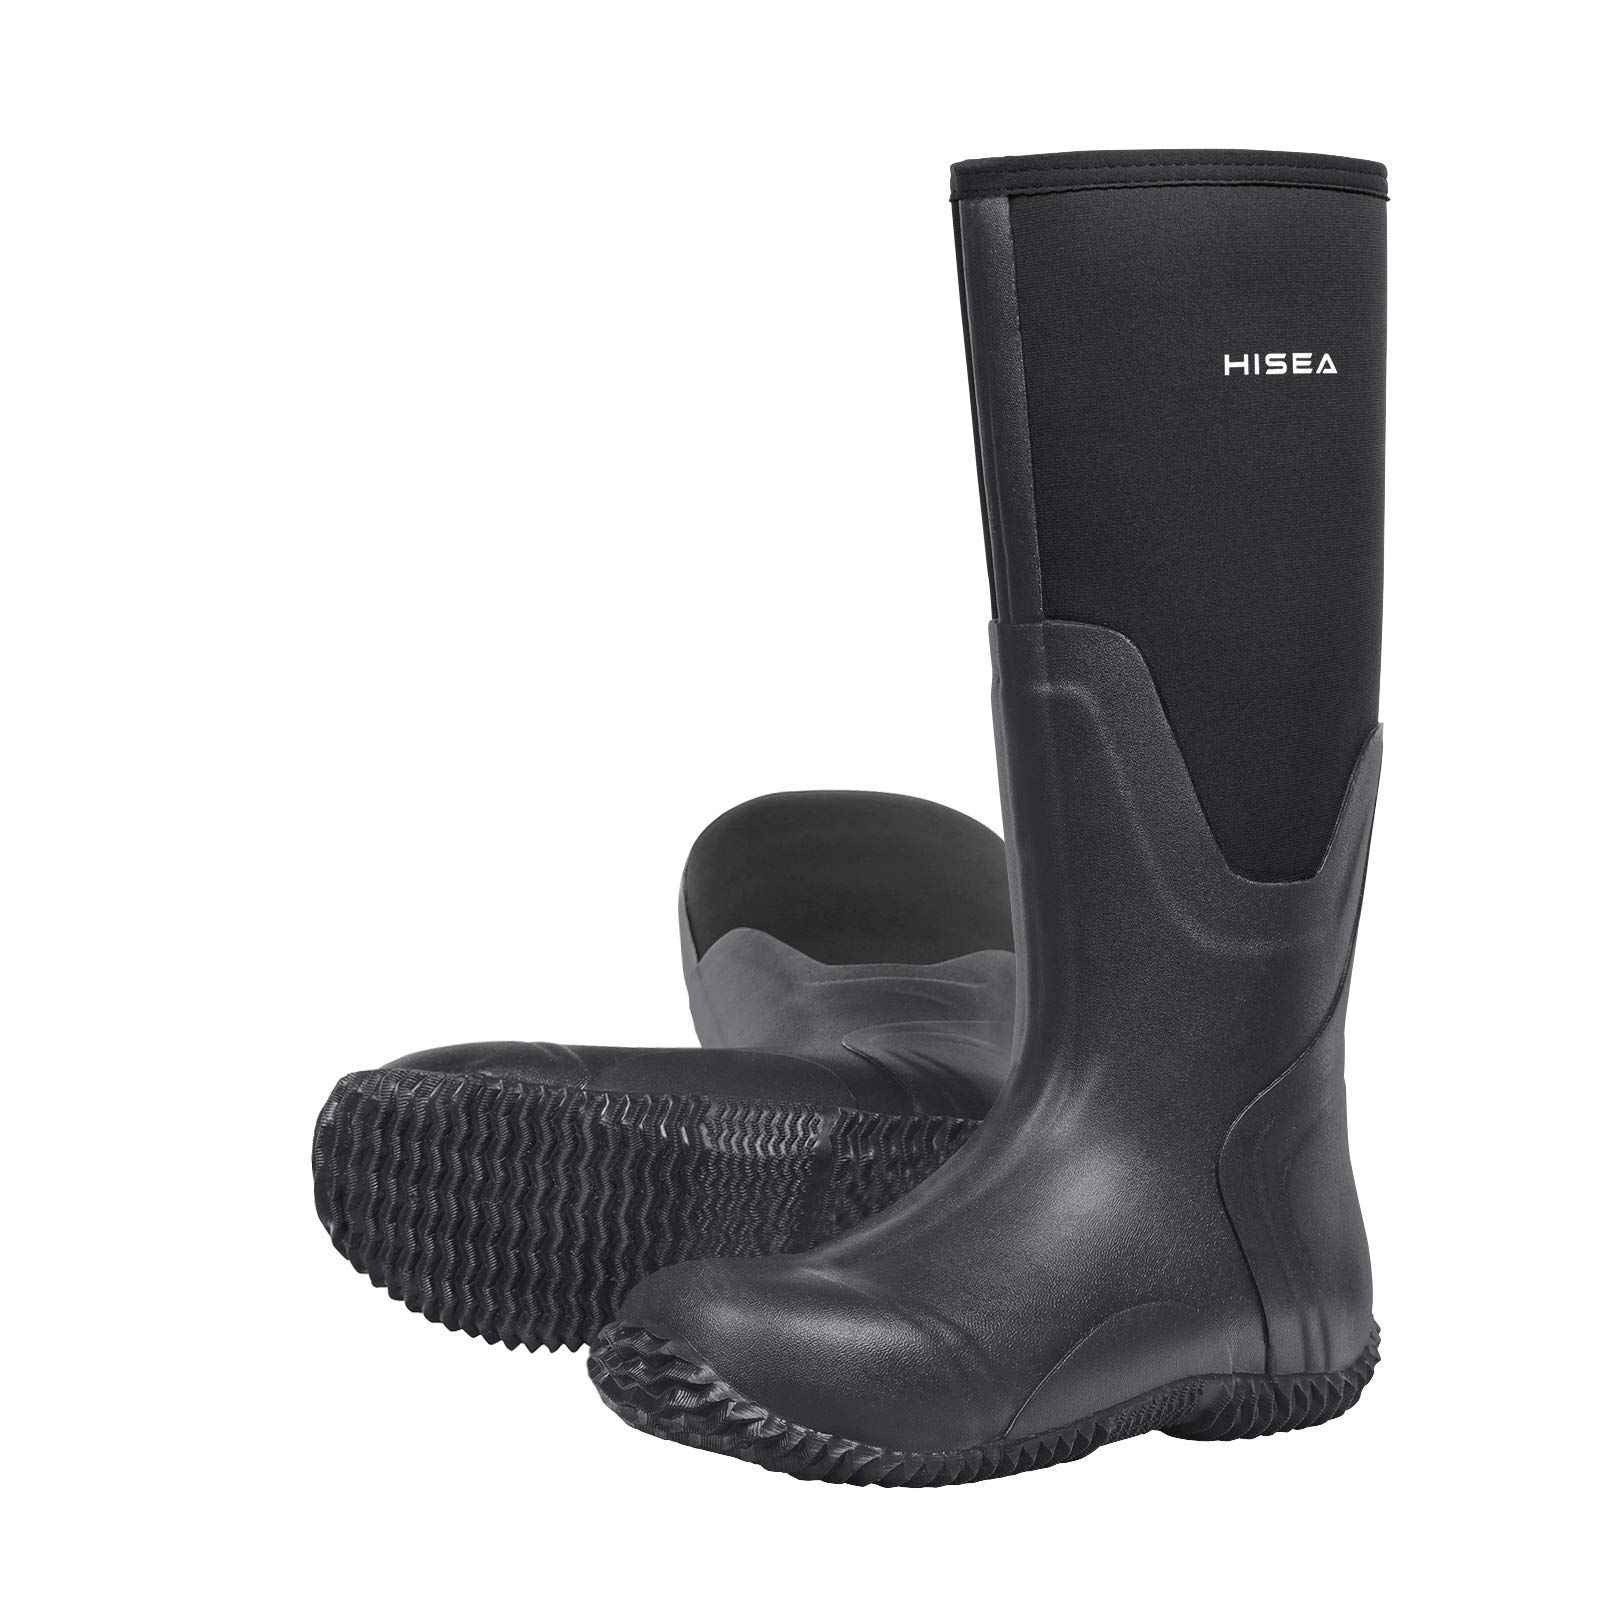 Hisea Mens Insulated Rubber Neoprene Boots Waterproof Durable Insulated Outdoor Winter Snow Rain Boots Hunting Arctic Boot Black Size 7 by Hisea (Image #1)